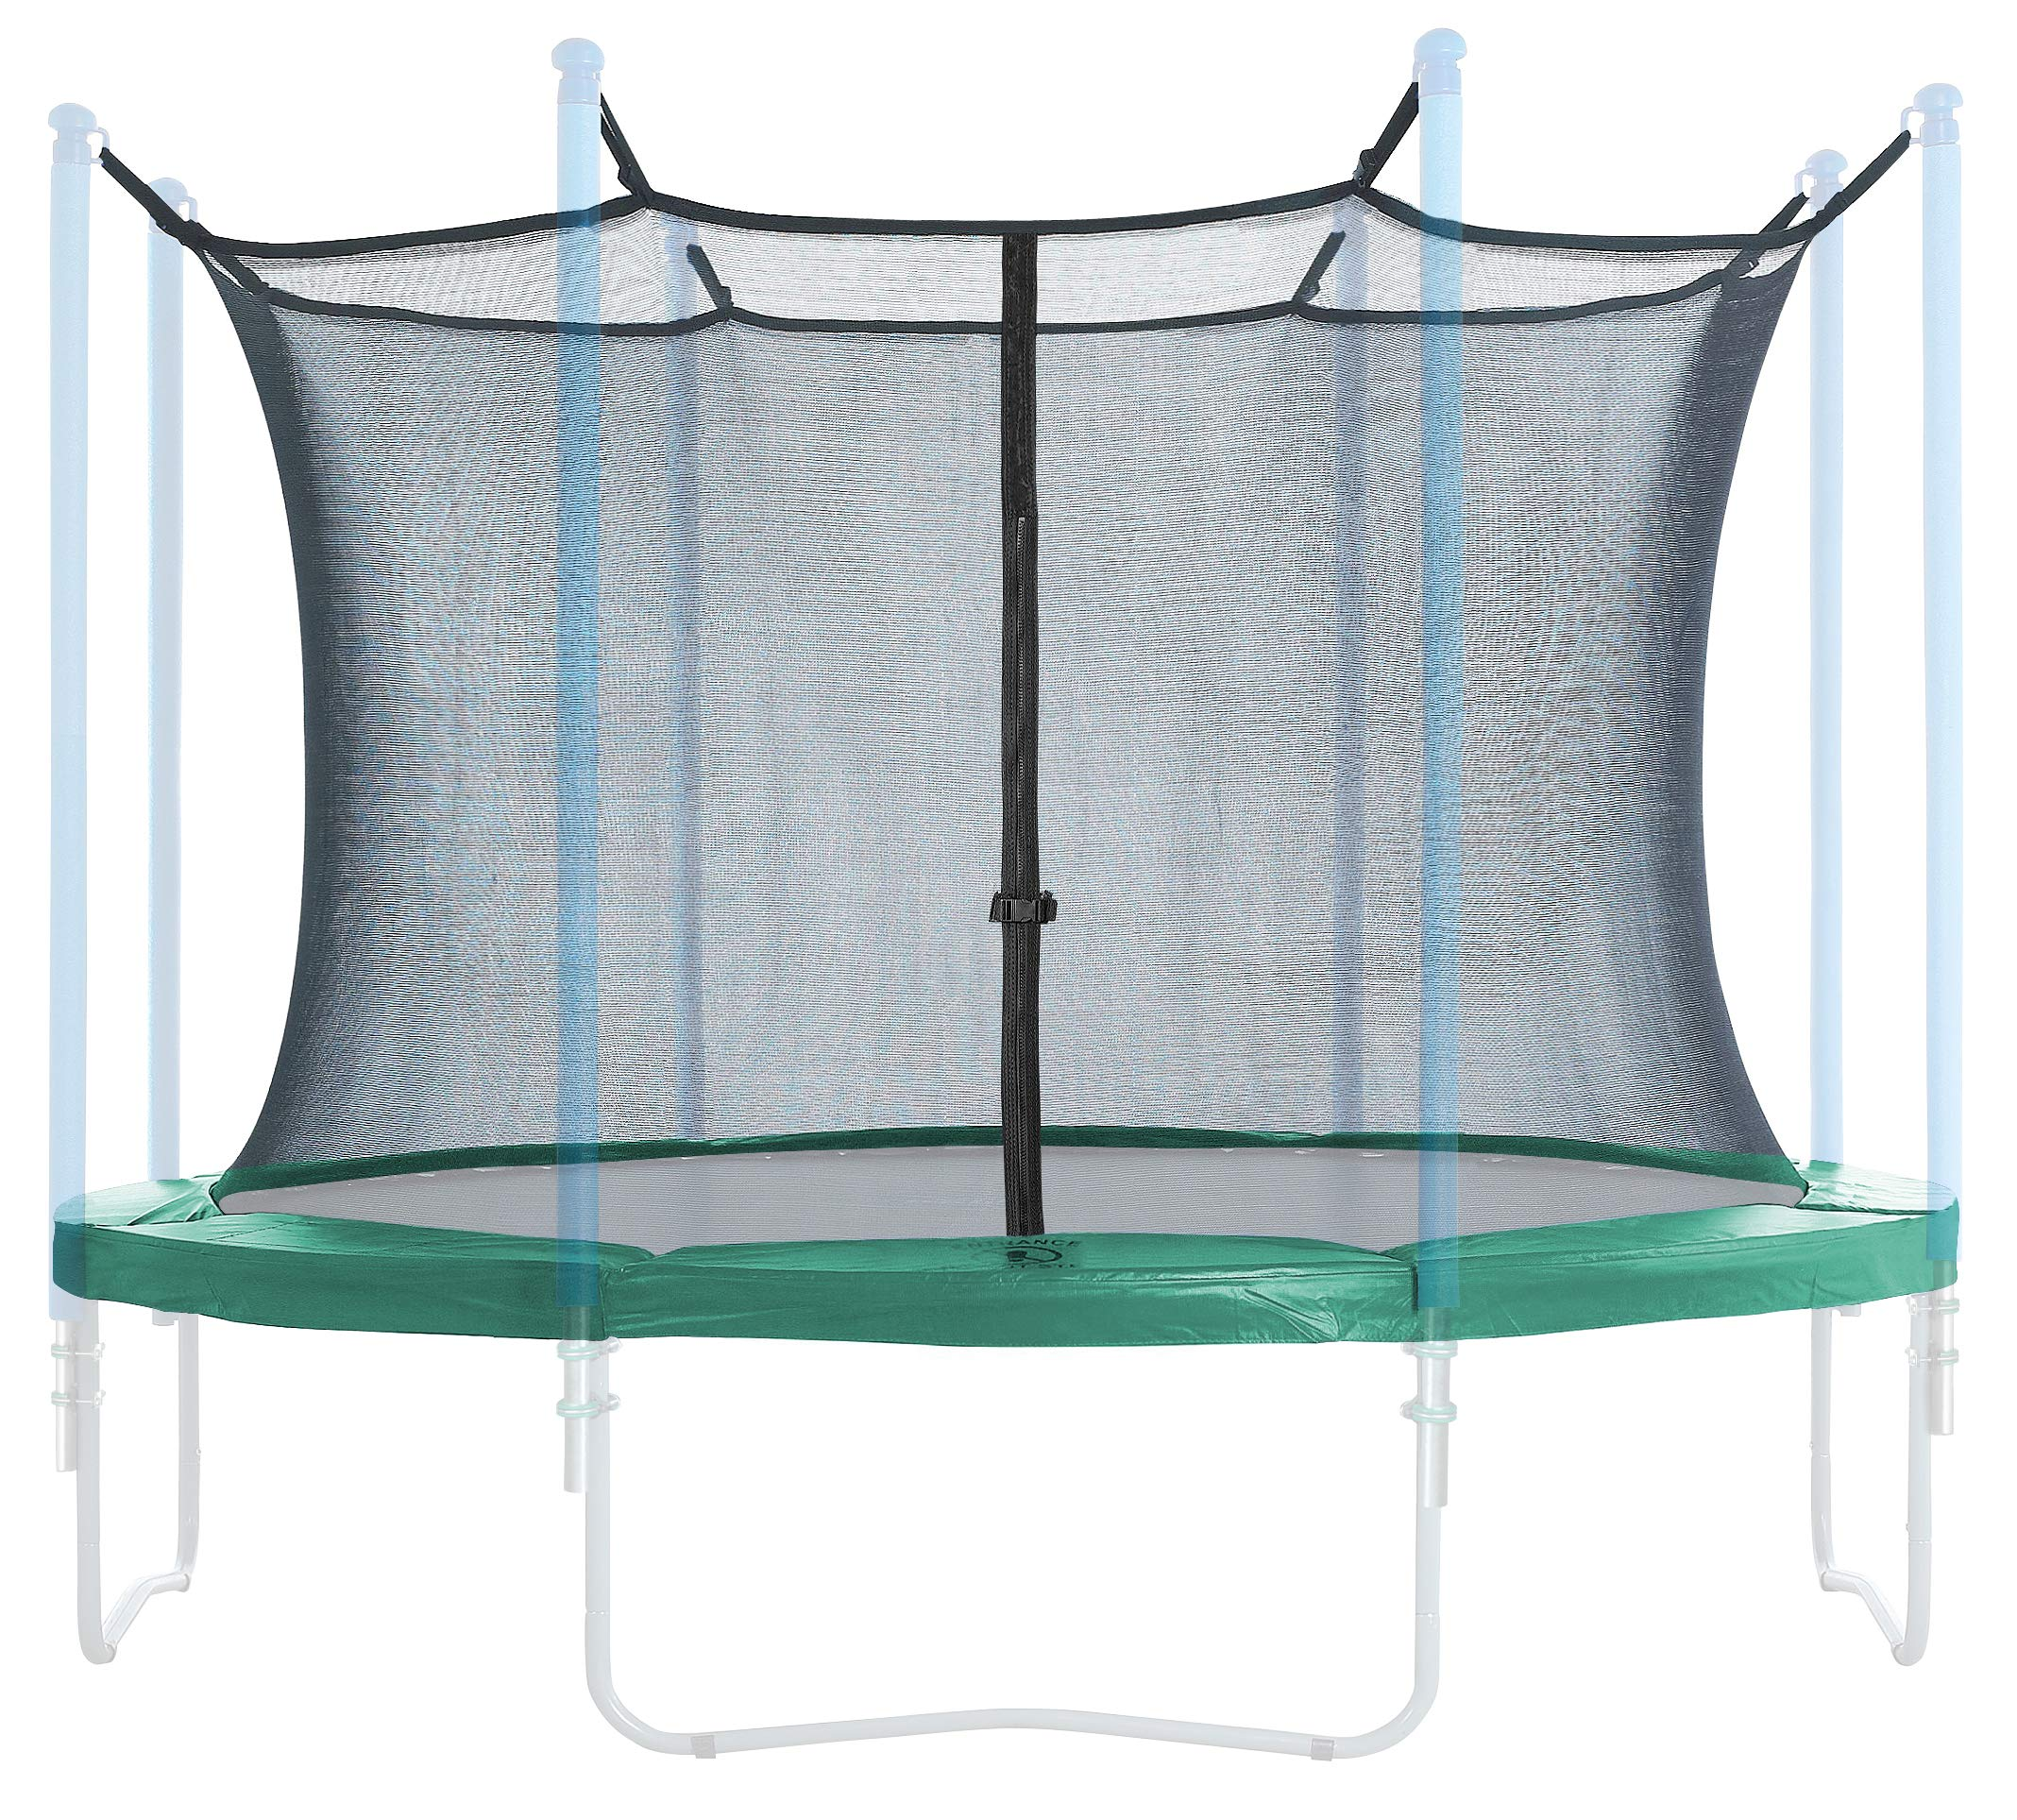 Upper Bounce Super Net & Pad Combo Fits for 14' Round Frames Using 8 Poles or 4 Arches by Upper Bounce